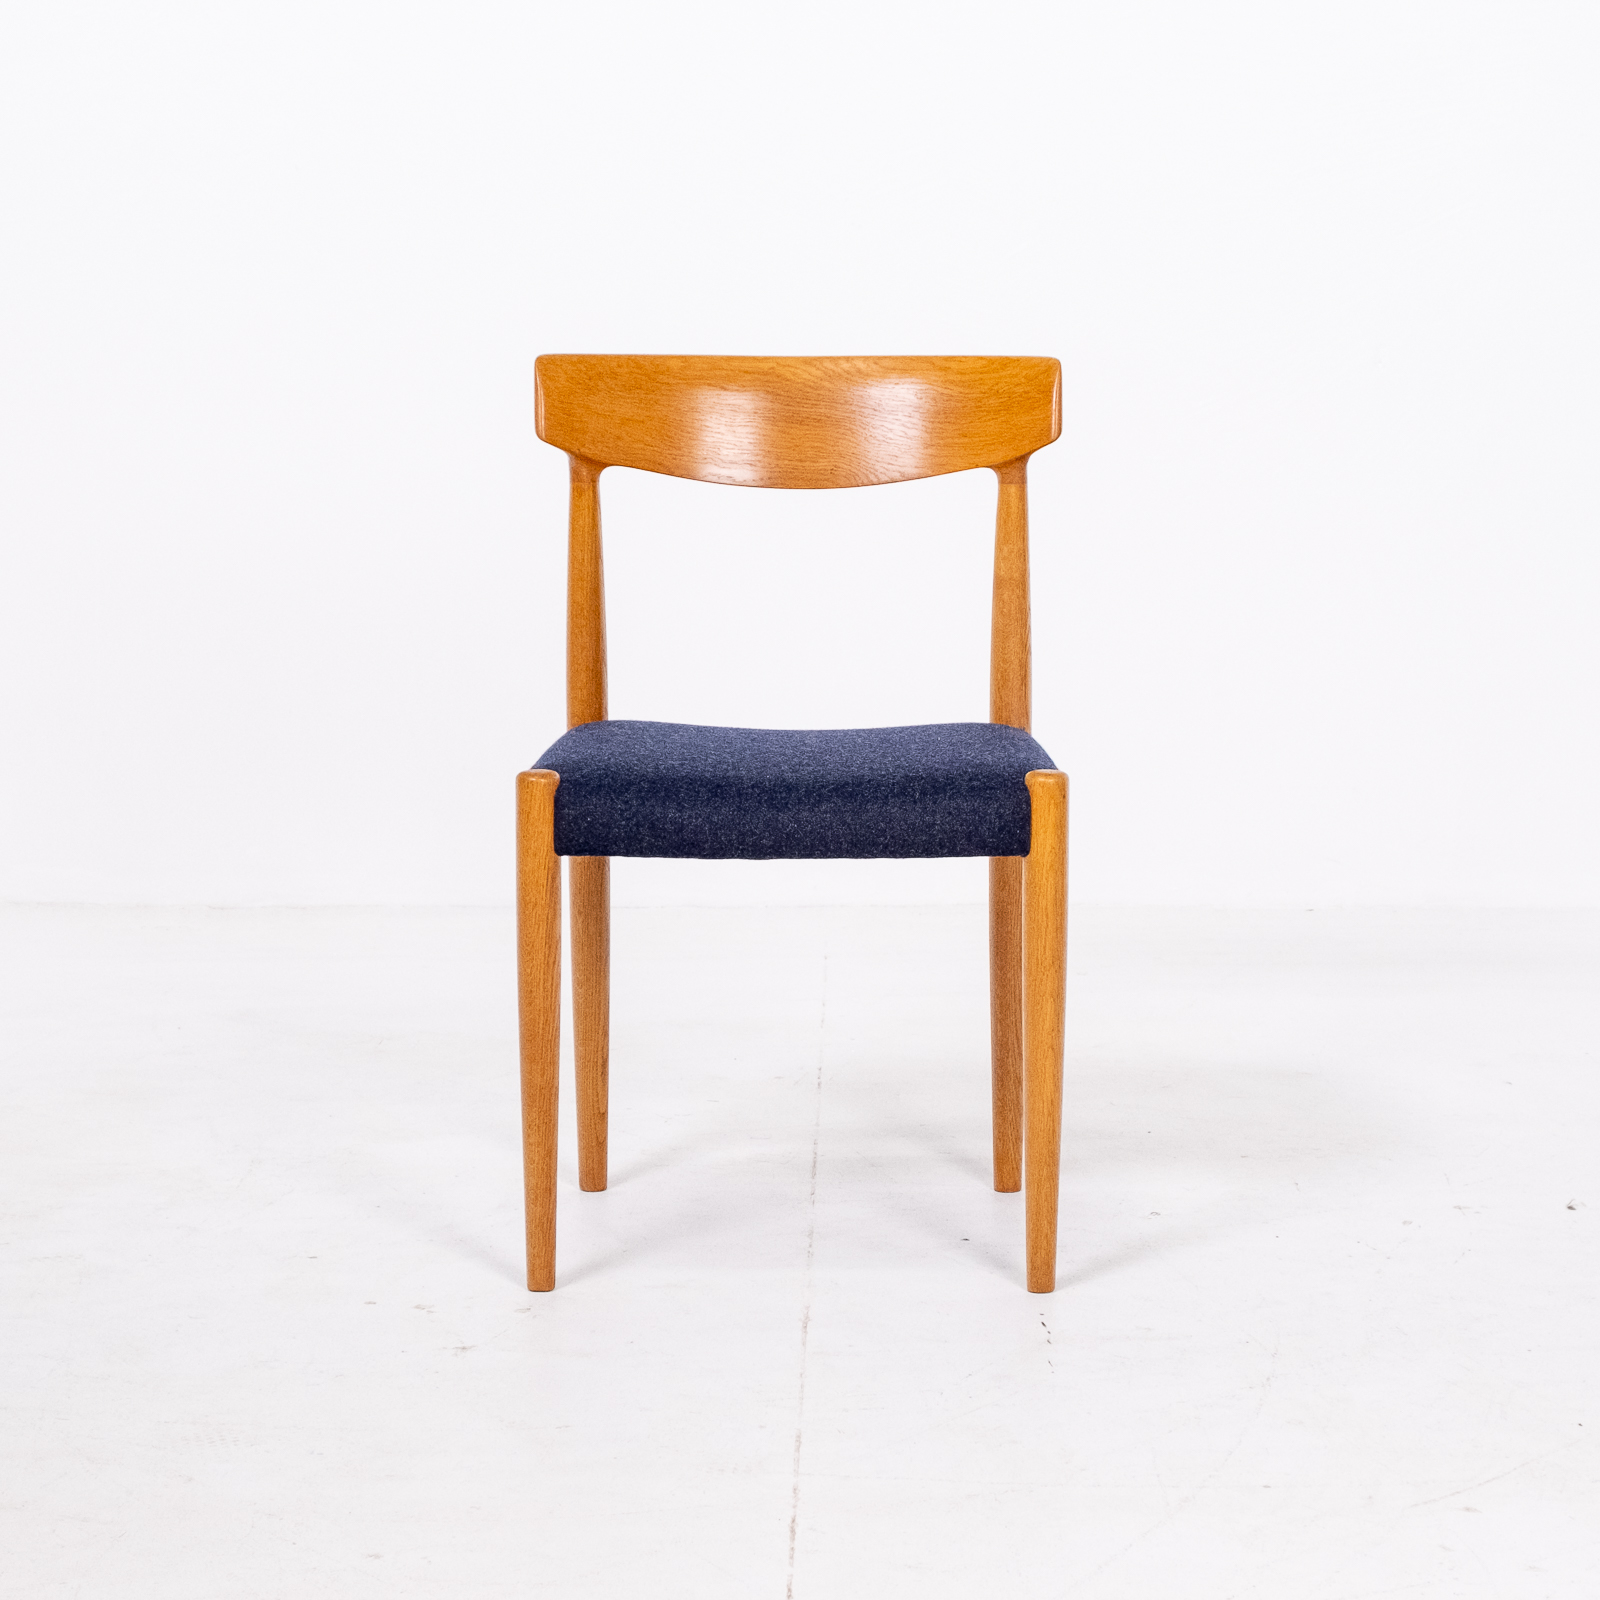 Set Of 6 Dining Chairs By Borge Mogensen For Fdb Mobler In Oak, 1960s, Denmark 00007